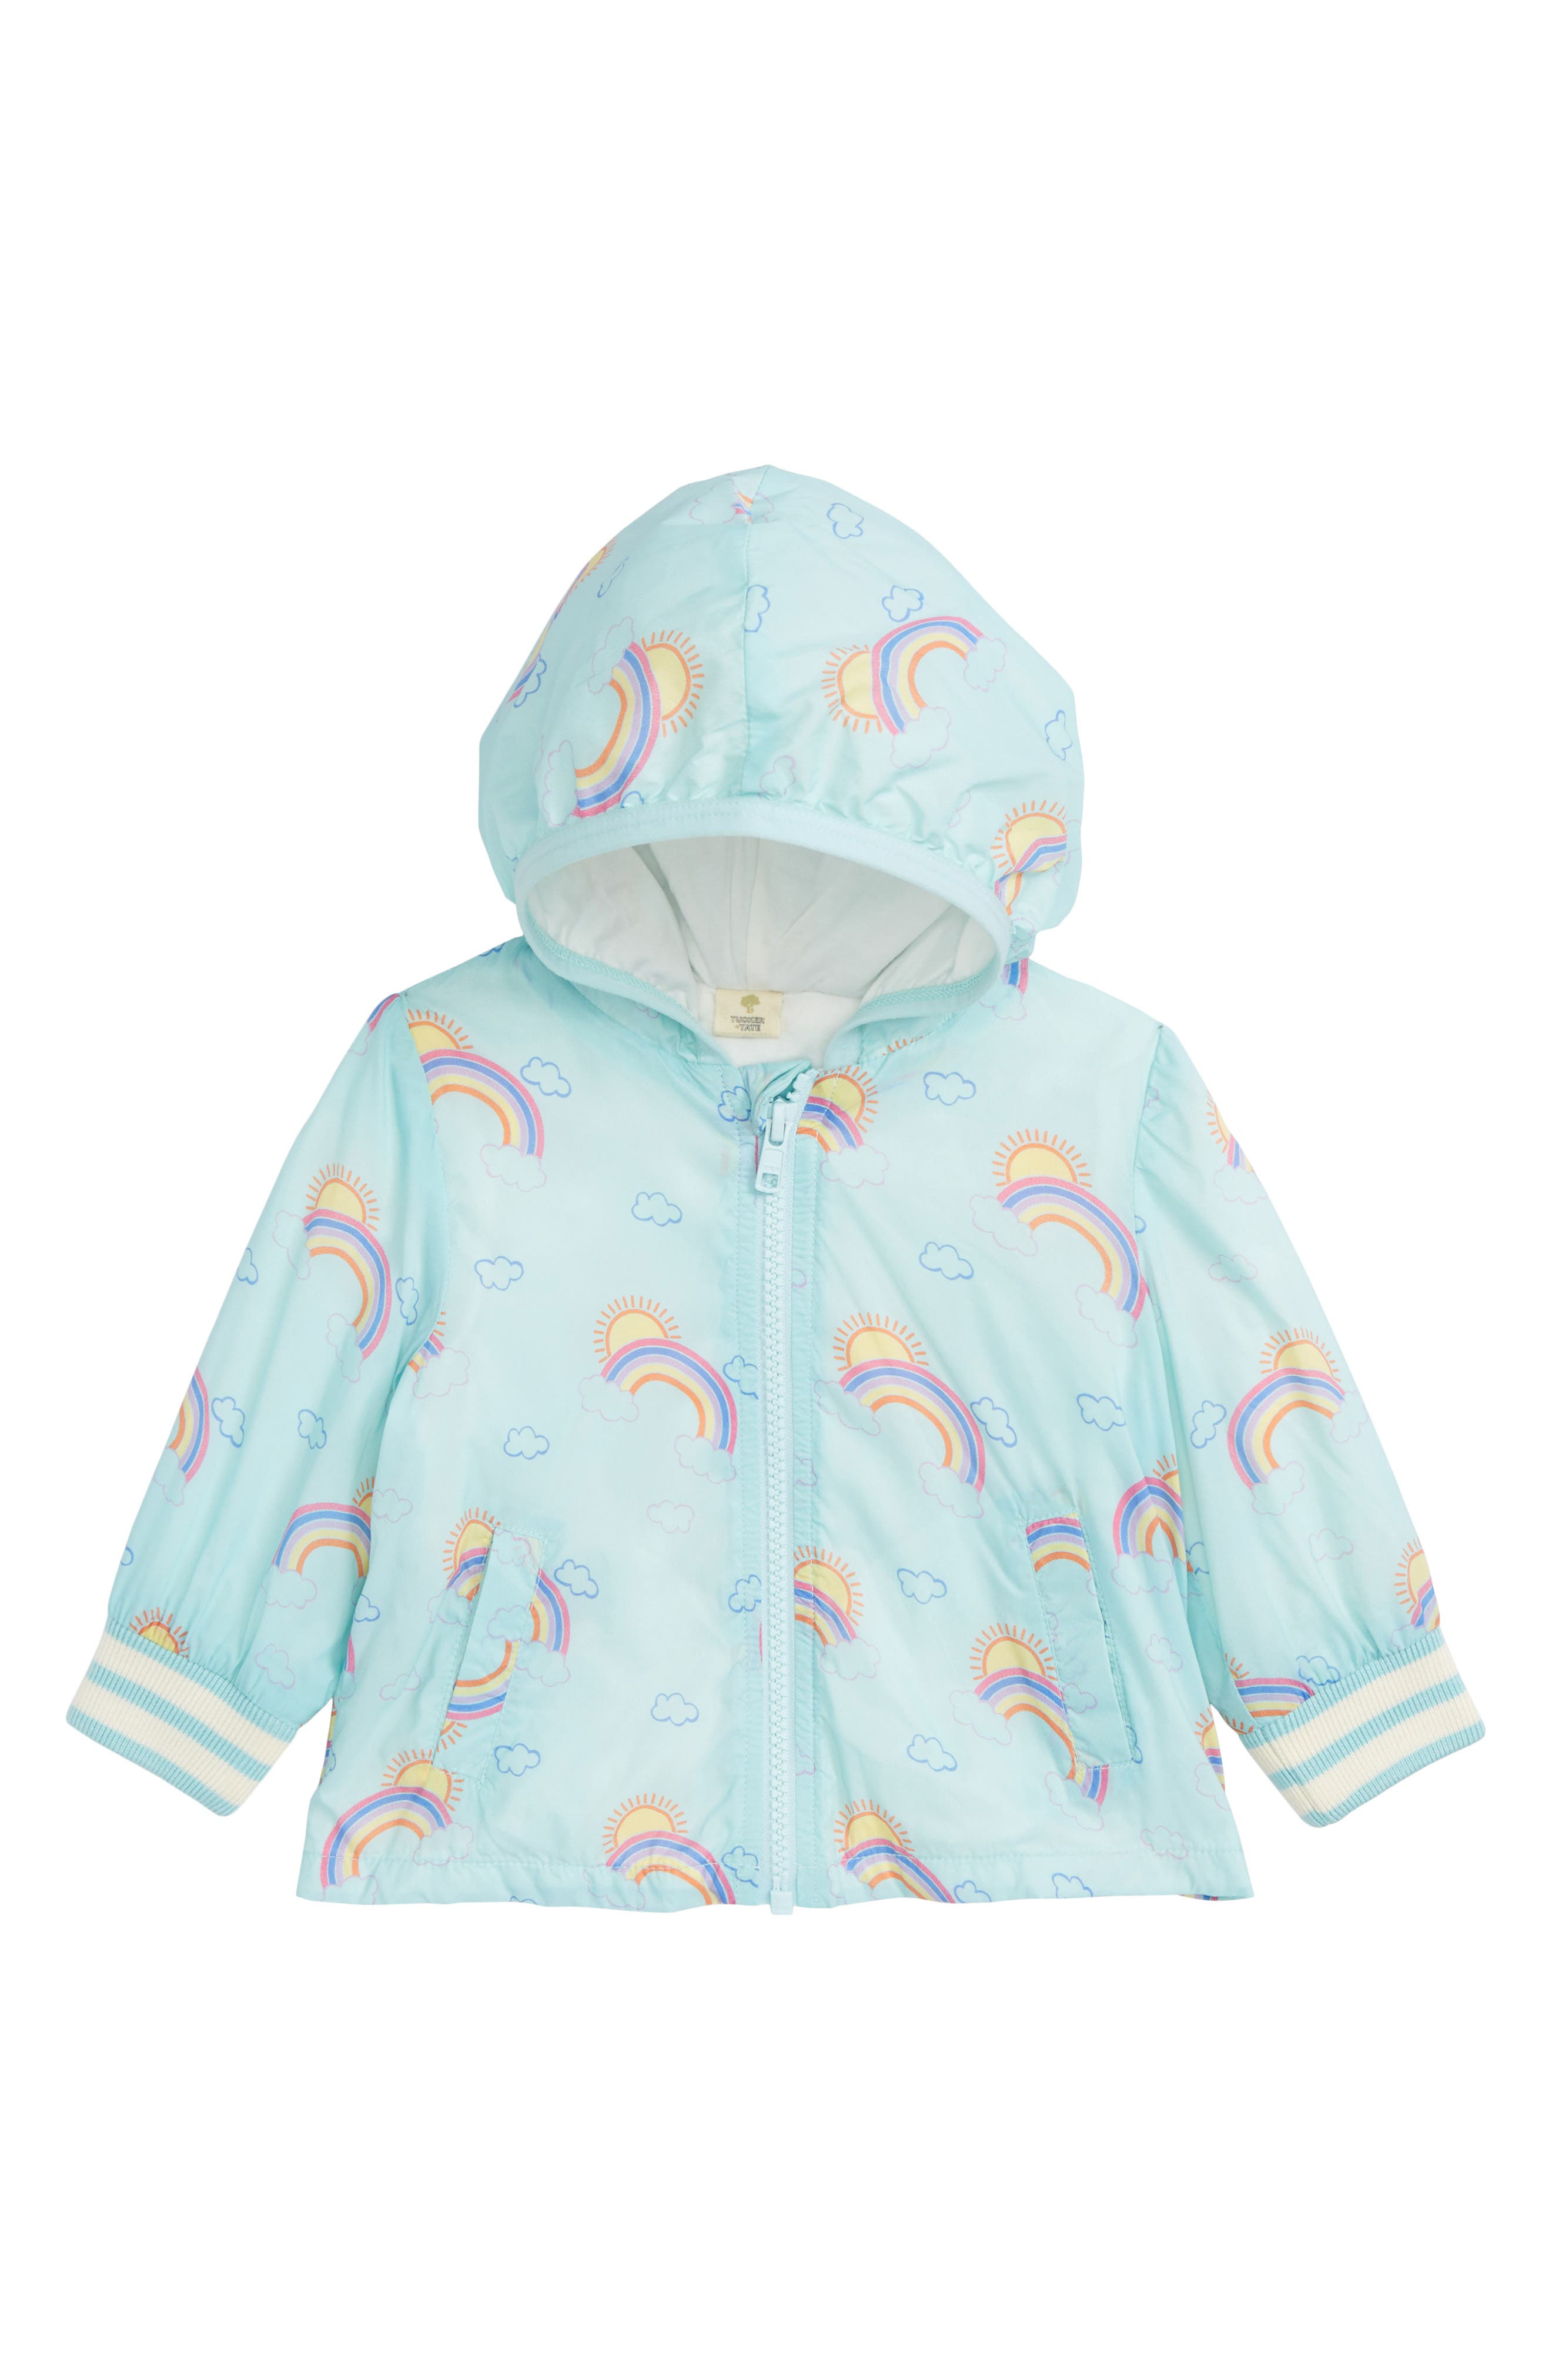 Rainbow Hooded Nylon Windbreaker,                         Main,                         color, Blue Glow Rainbows